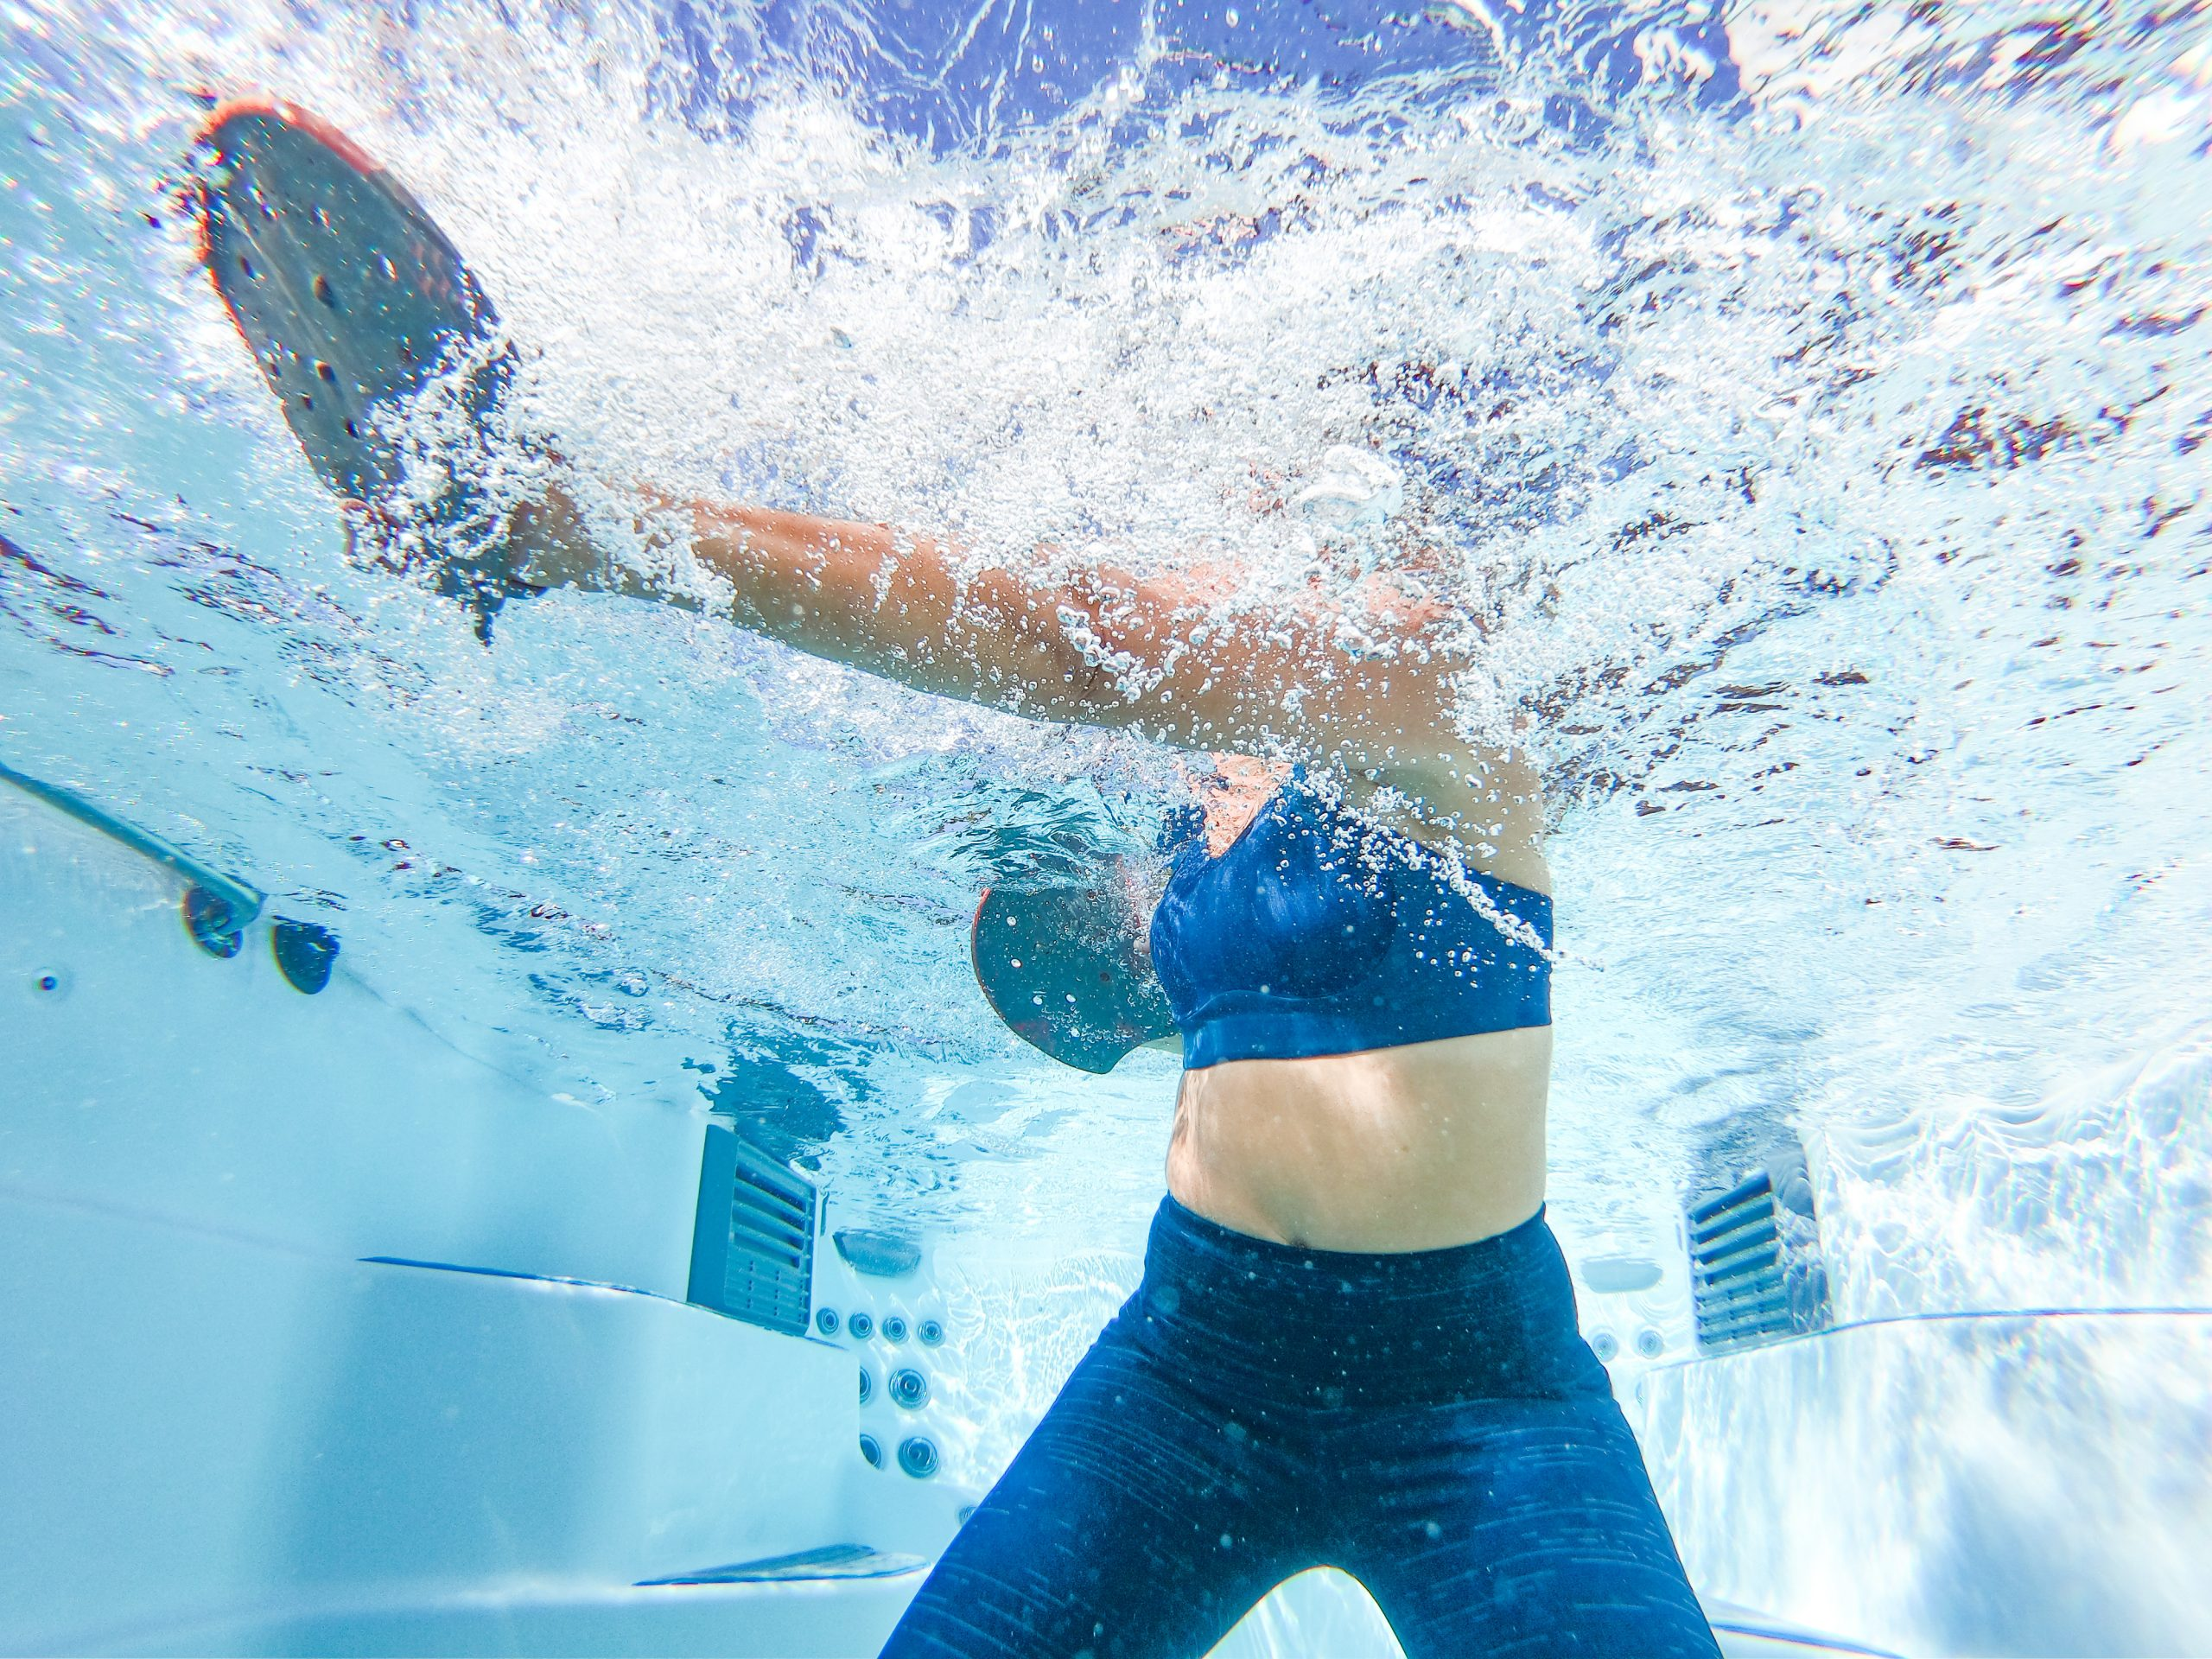 5 Effective Hot Tub Exercises to Keep You Moving